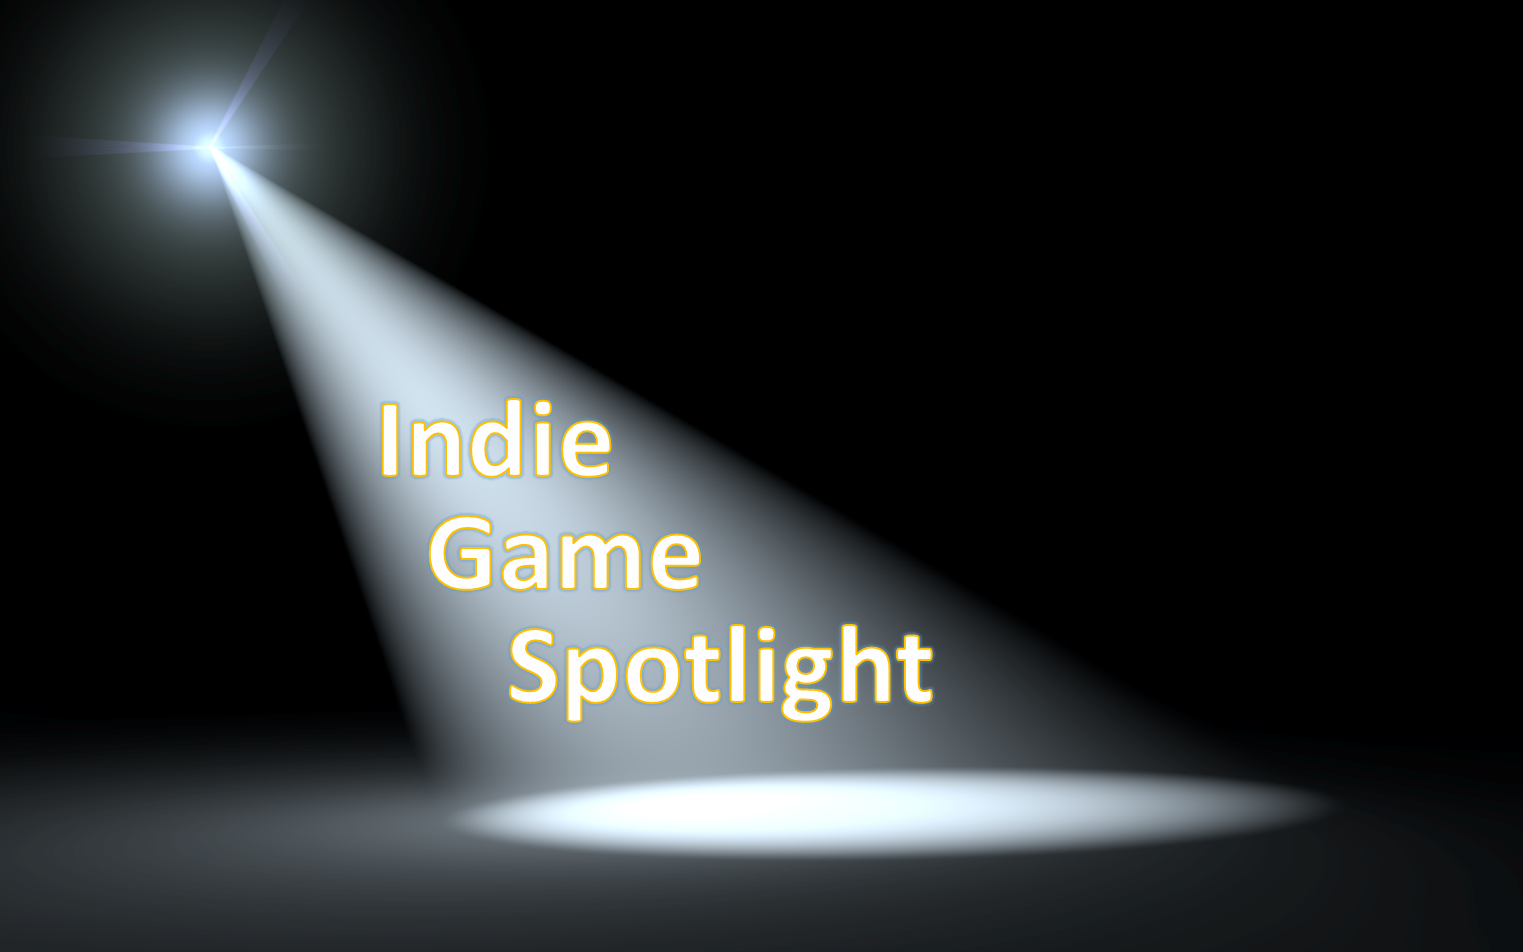 Indie Game Spotlight